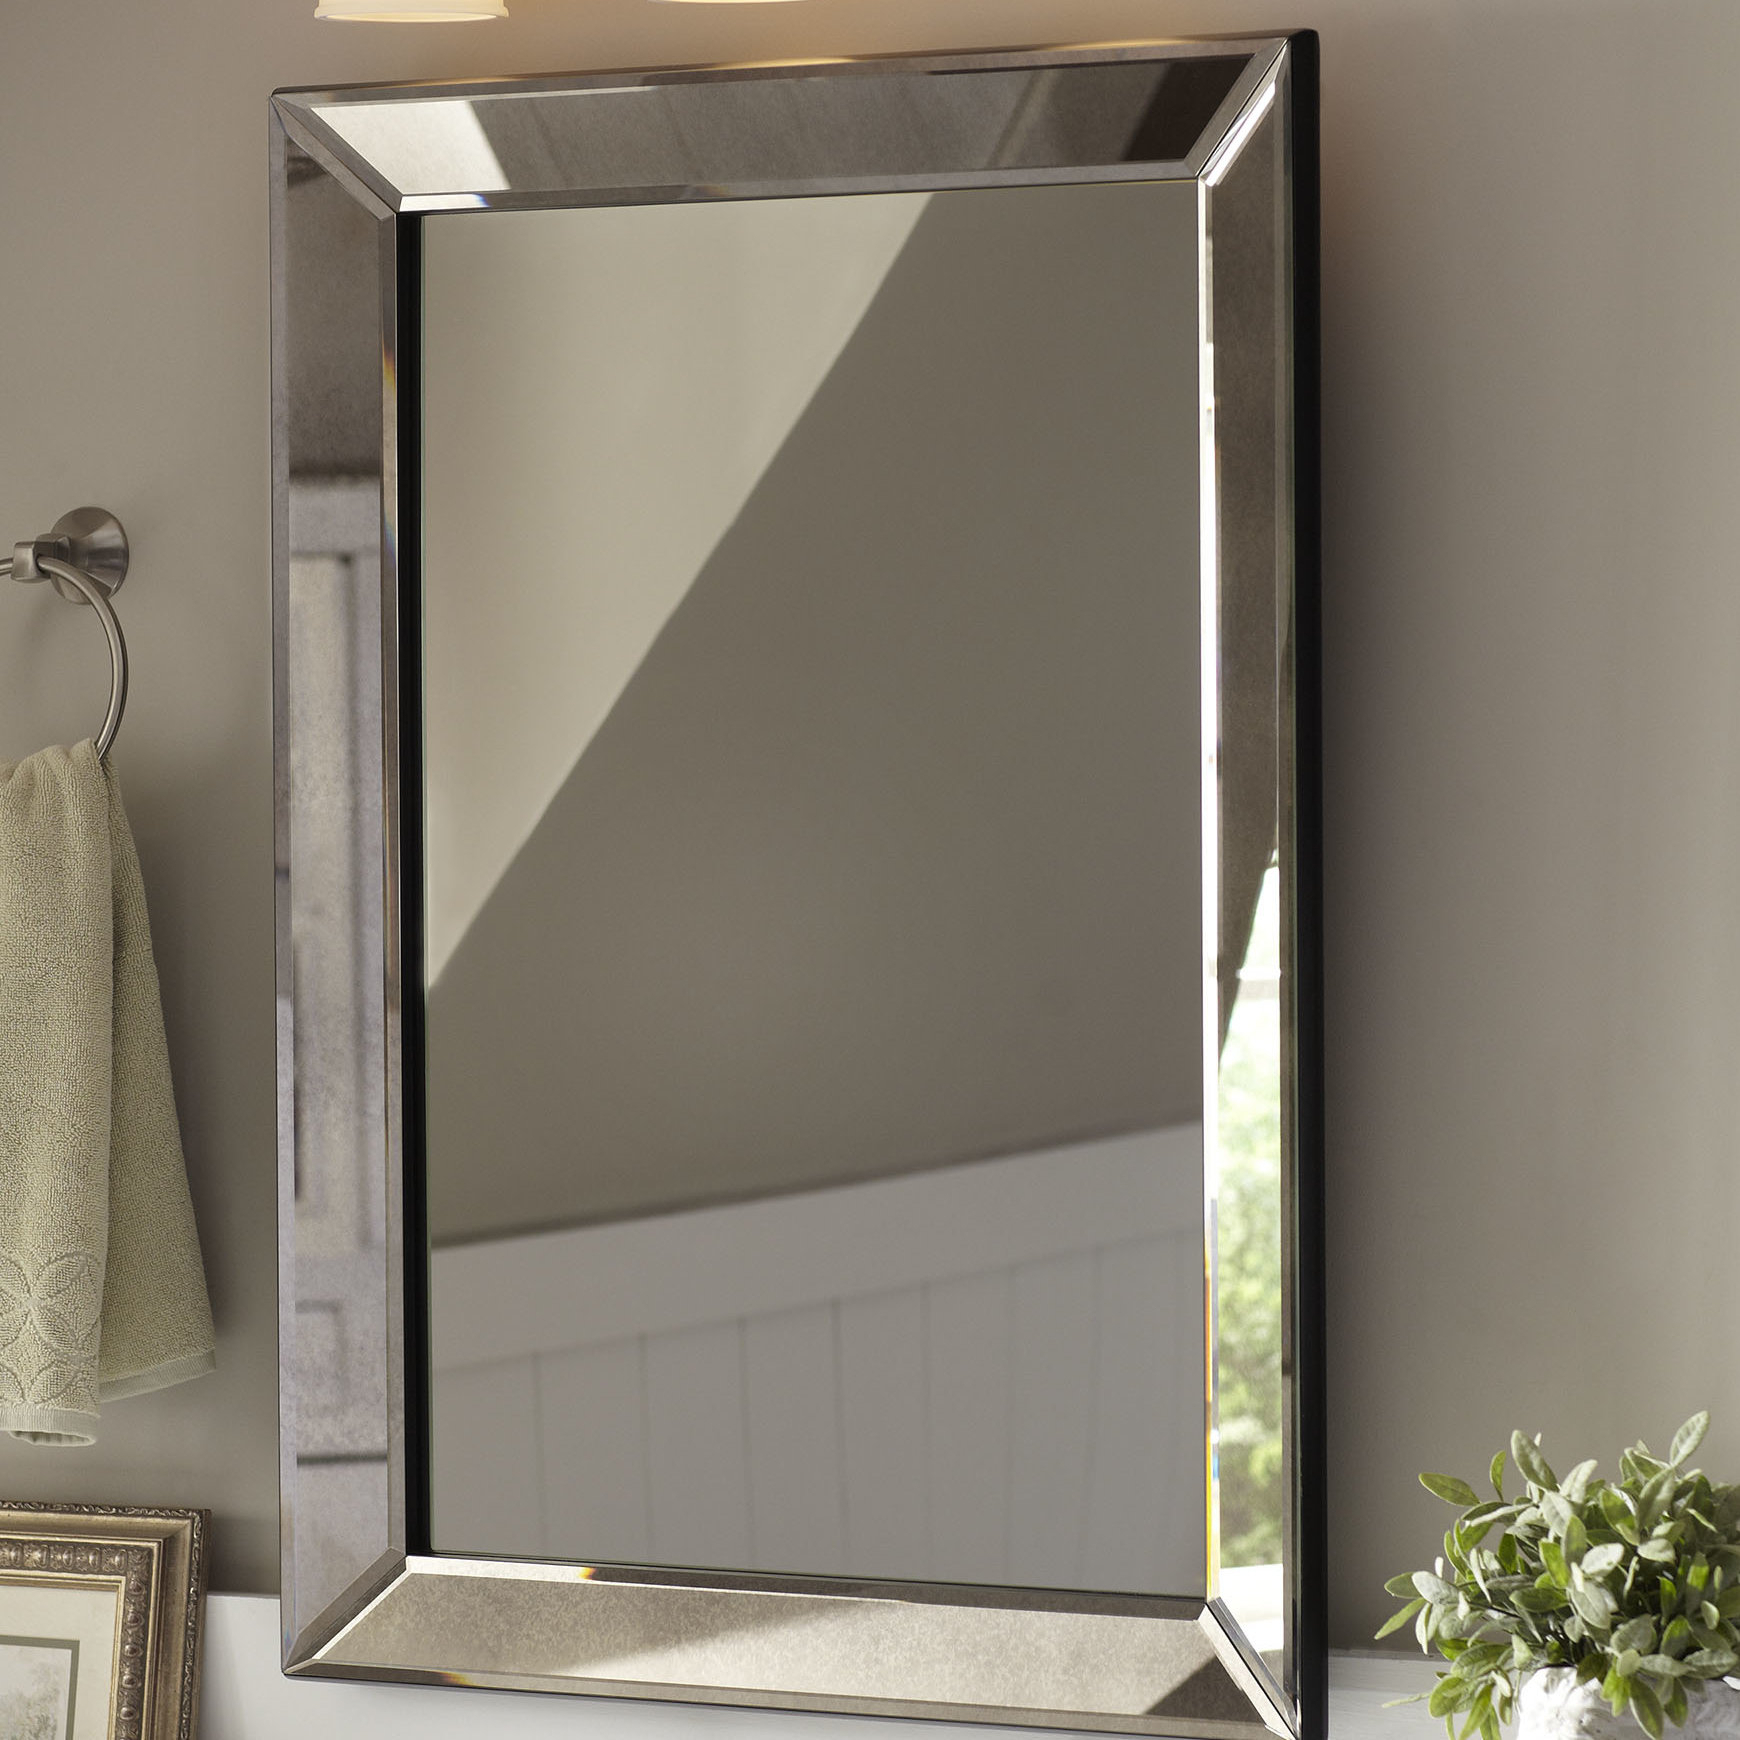 Farmhouse Mirrors | Birch Lane Throughout Phineas Wall Mirrors (Image 6 of 20)